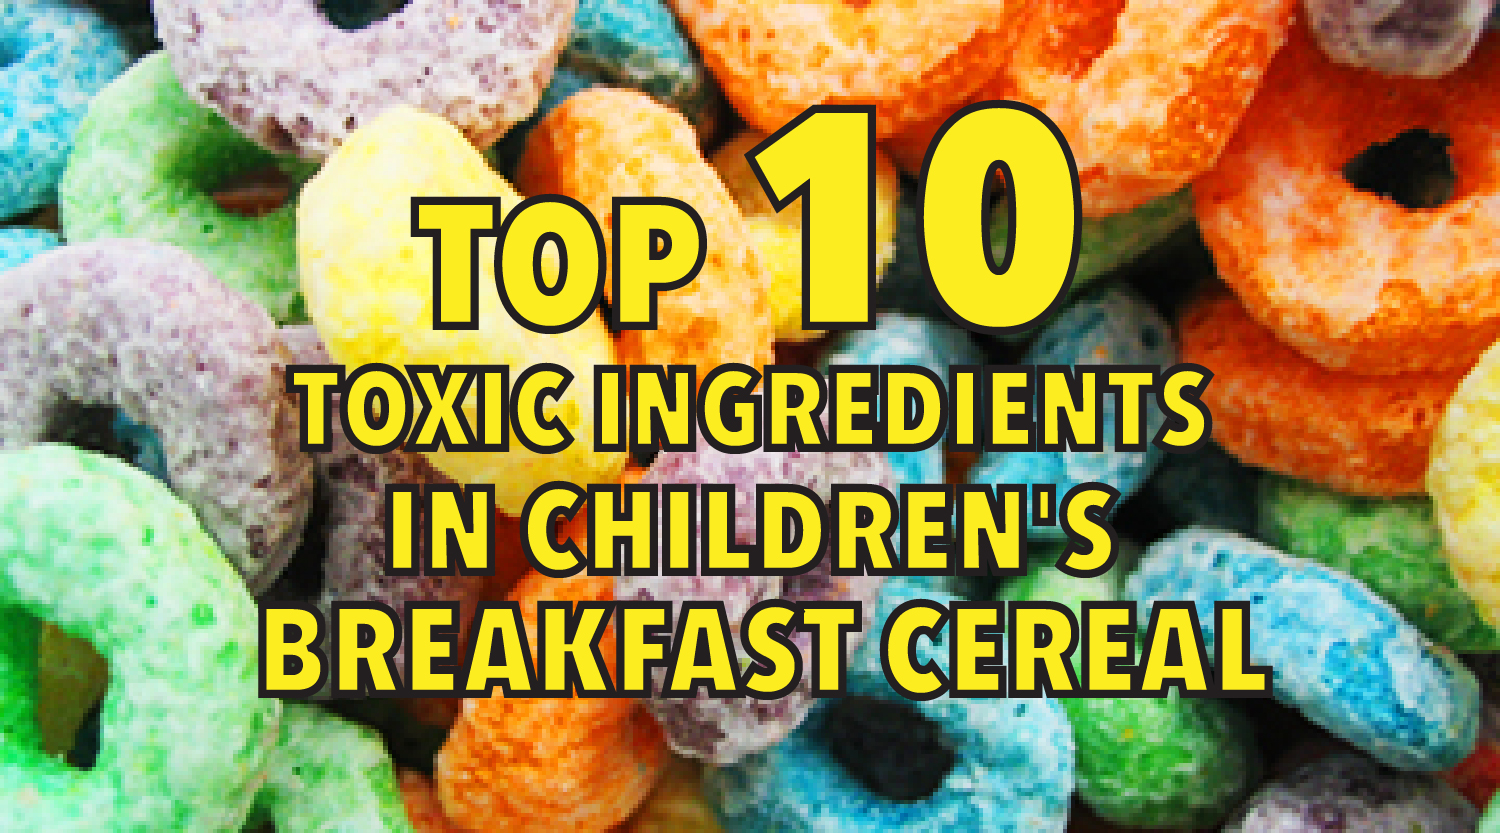 Top 10 Toxic Ingredients in Children's Breakfast Cereal